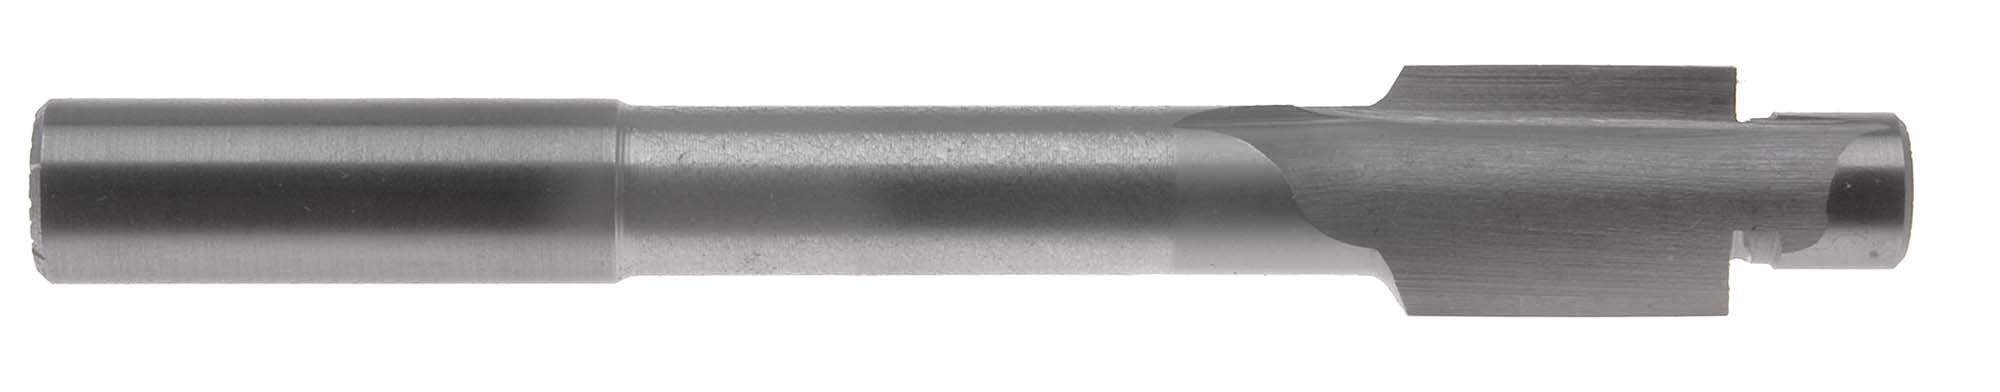 "5/16""  2 Flute Solid Counterbore, High Speed Steel"